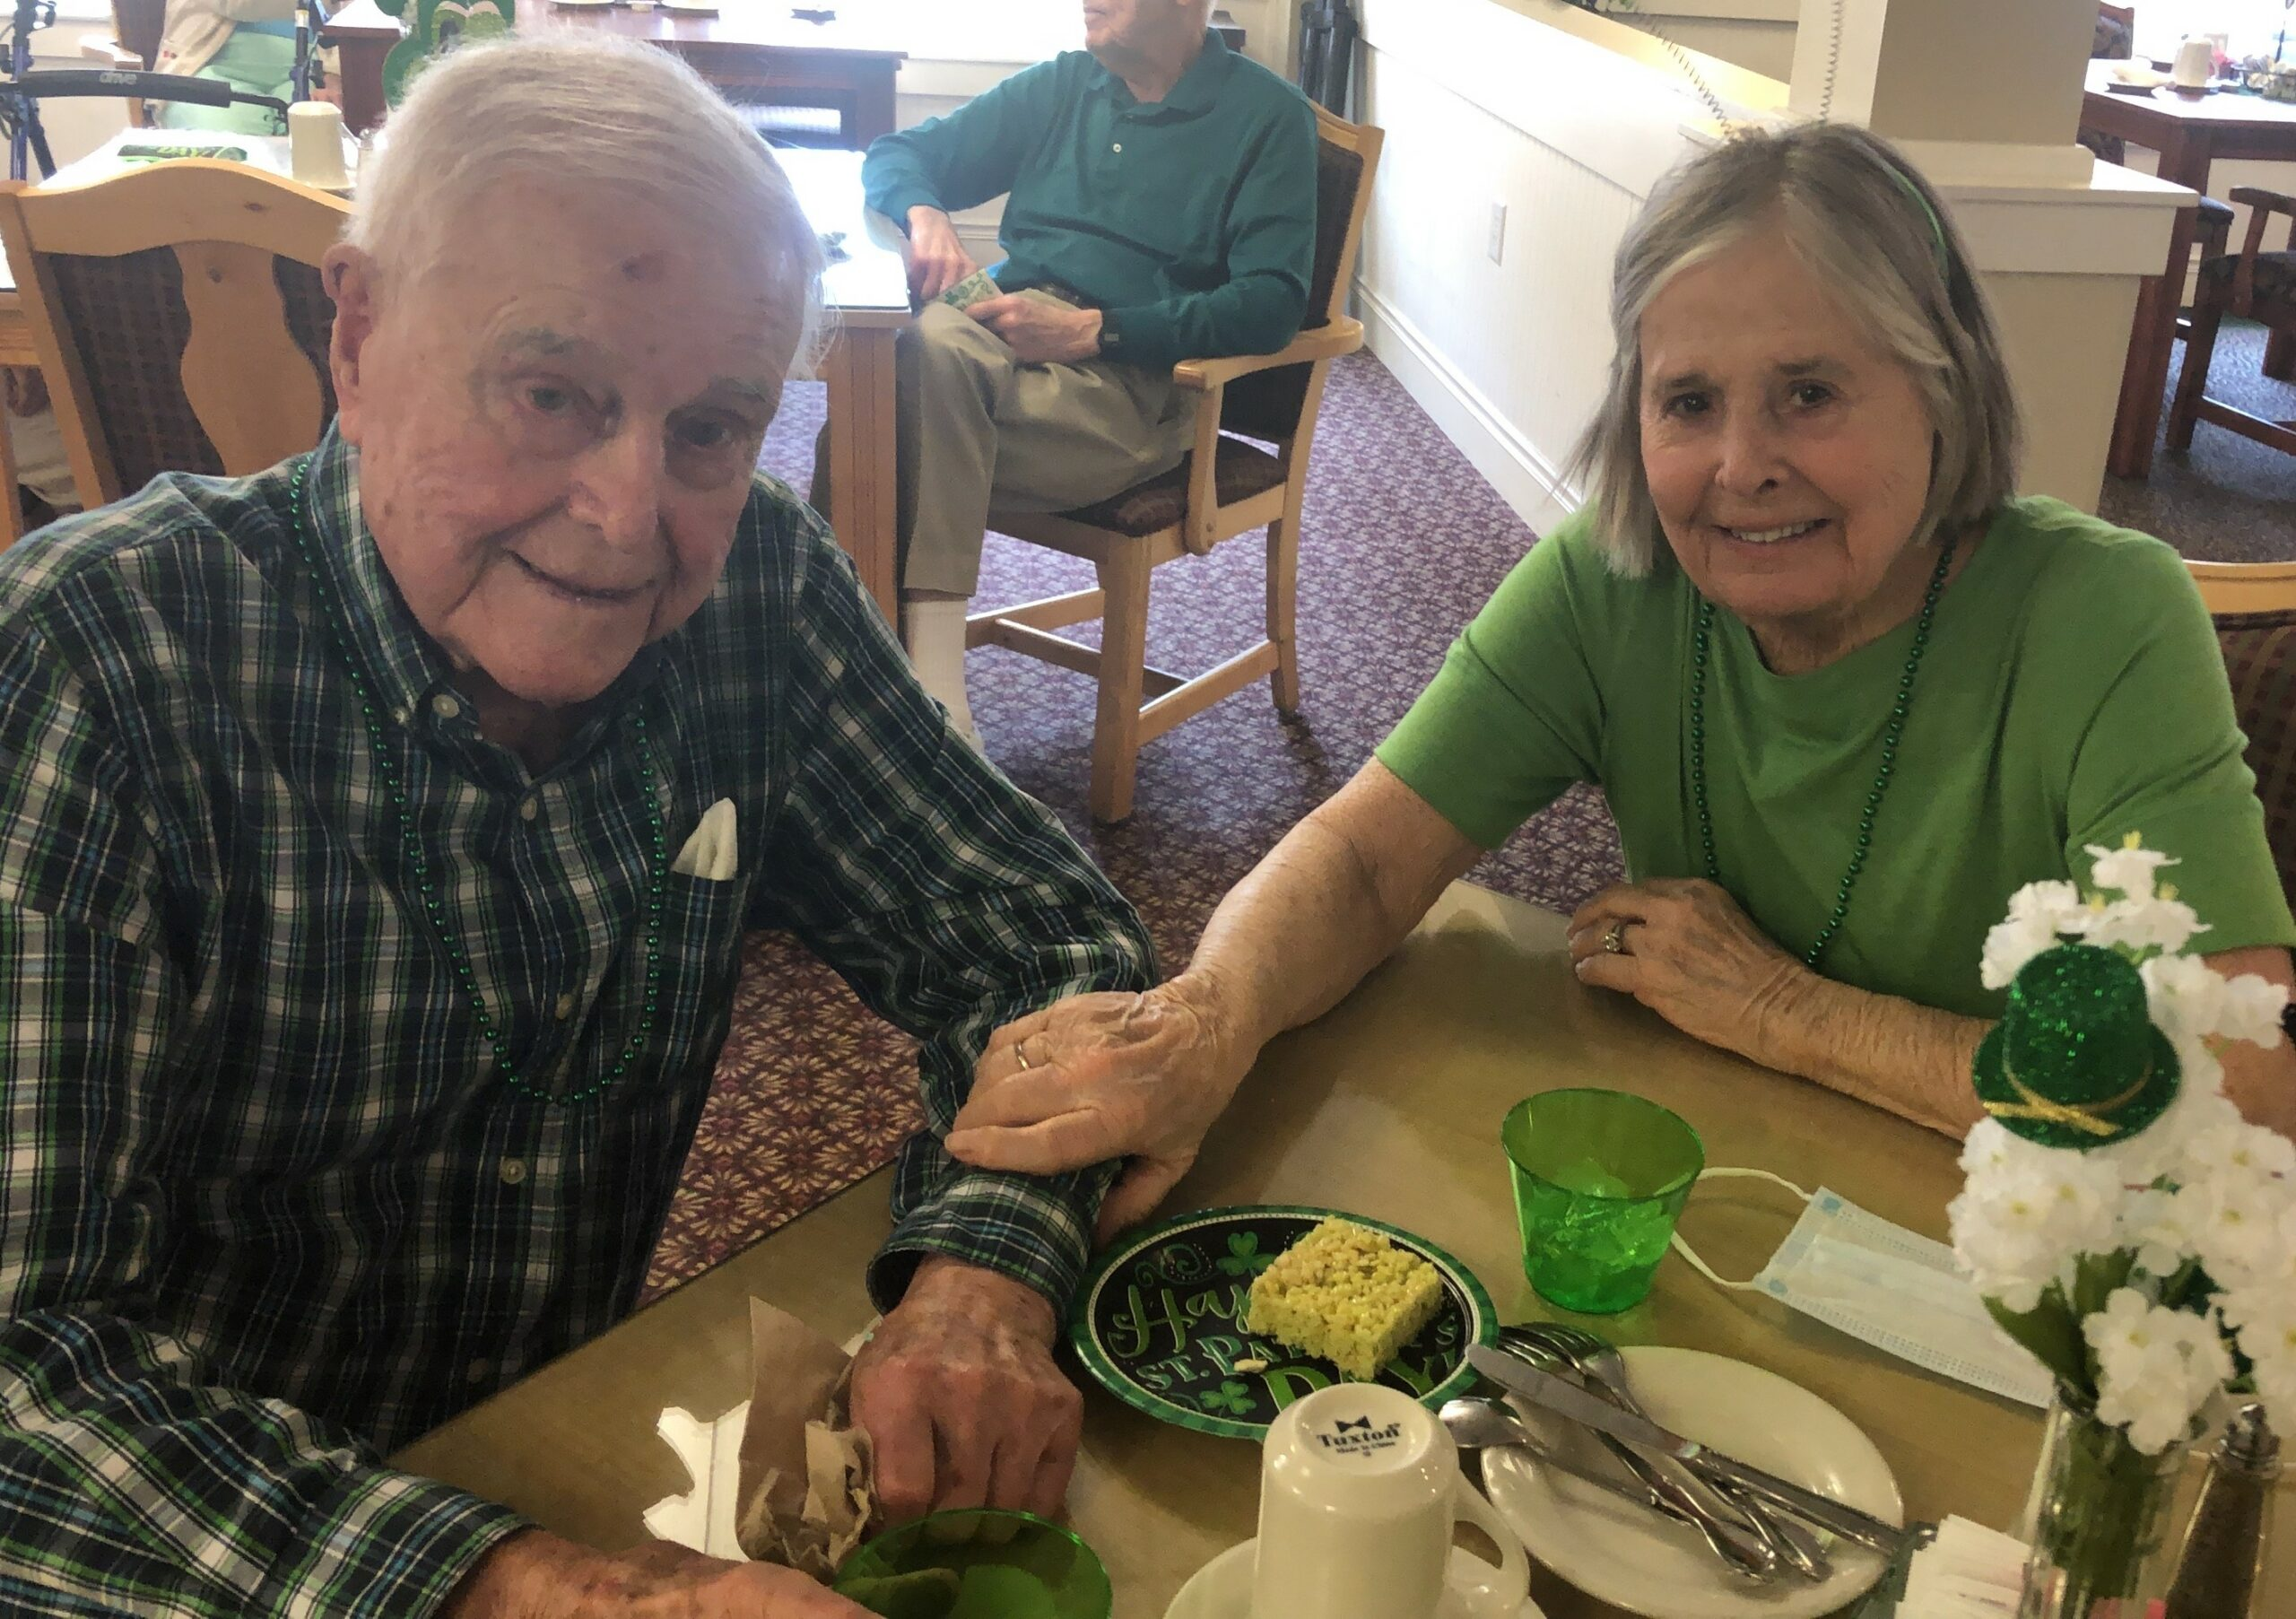 Bill and Marilyn Carmichael celebrating St. Patrick's Day together.